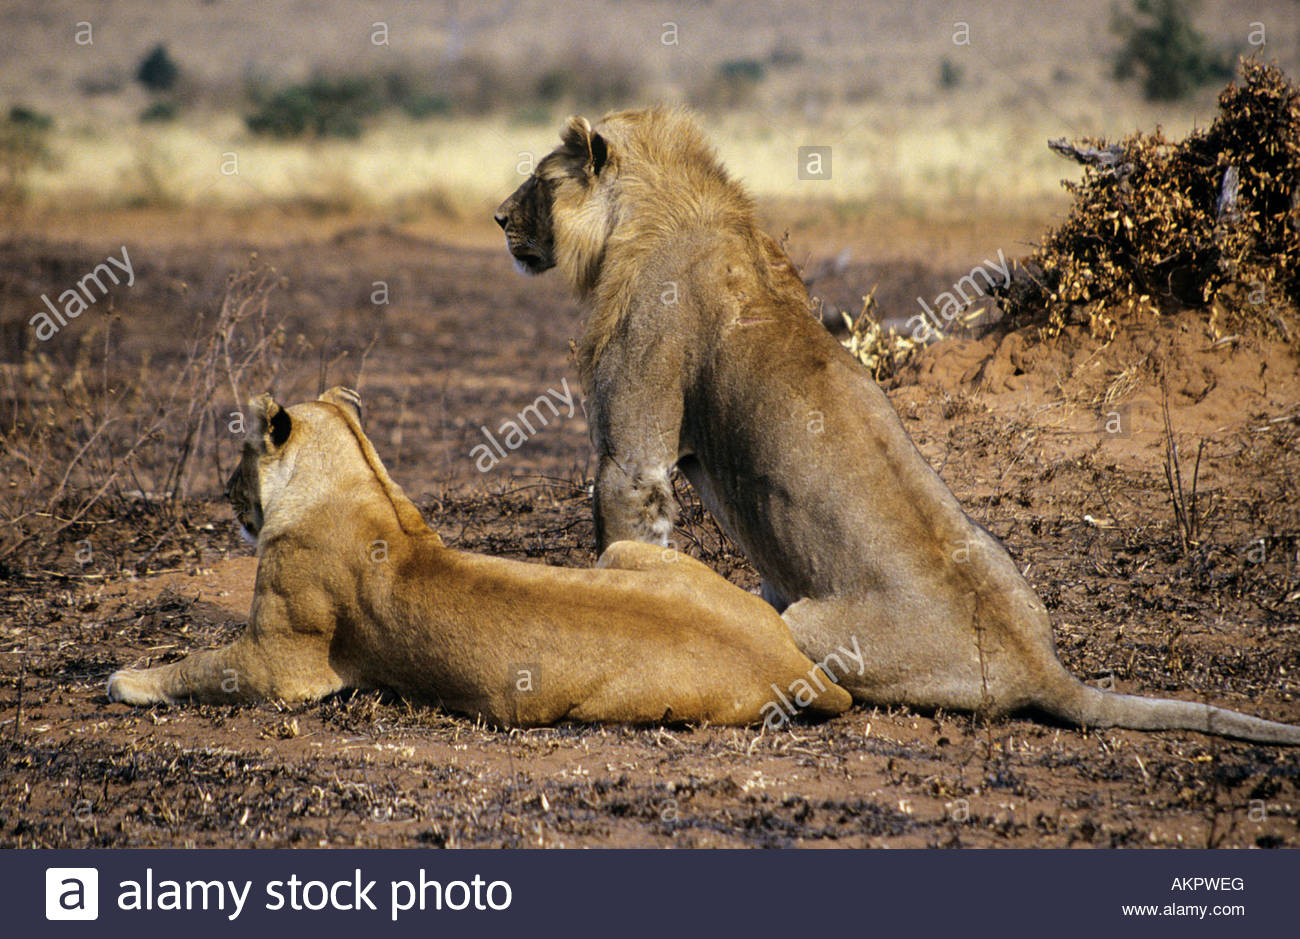 Two lions - Stock Image